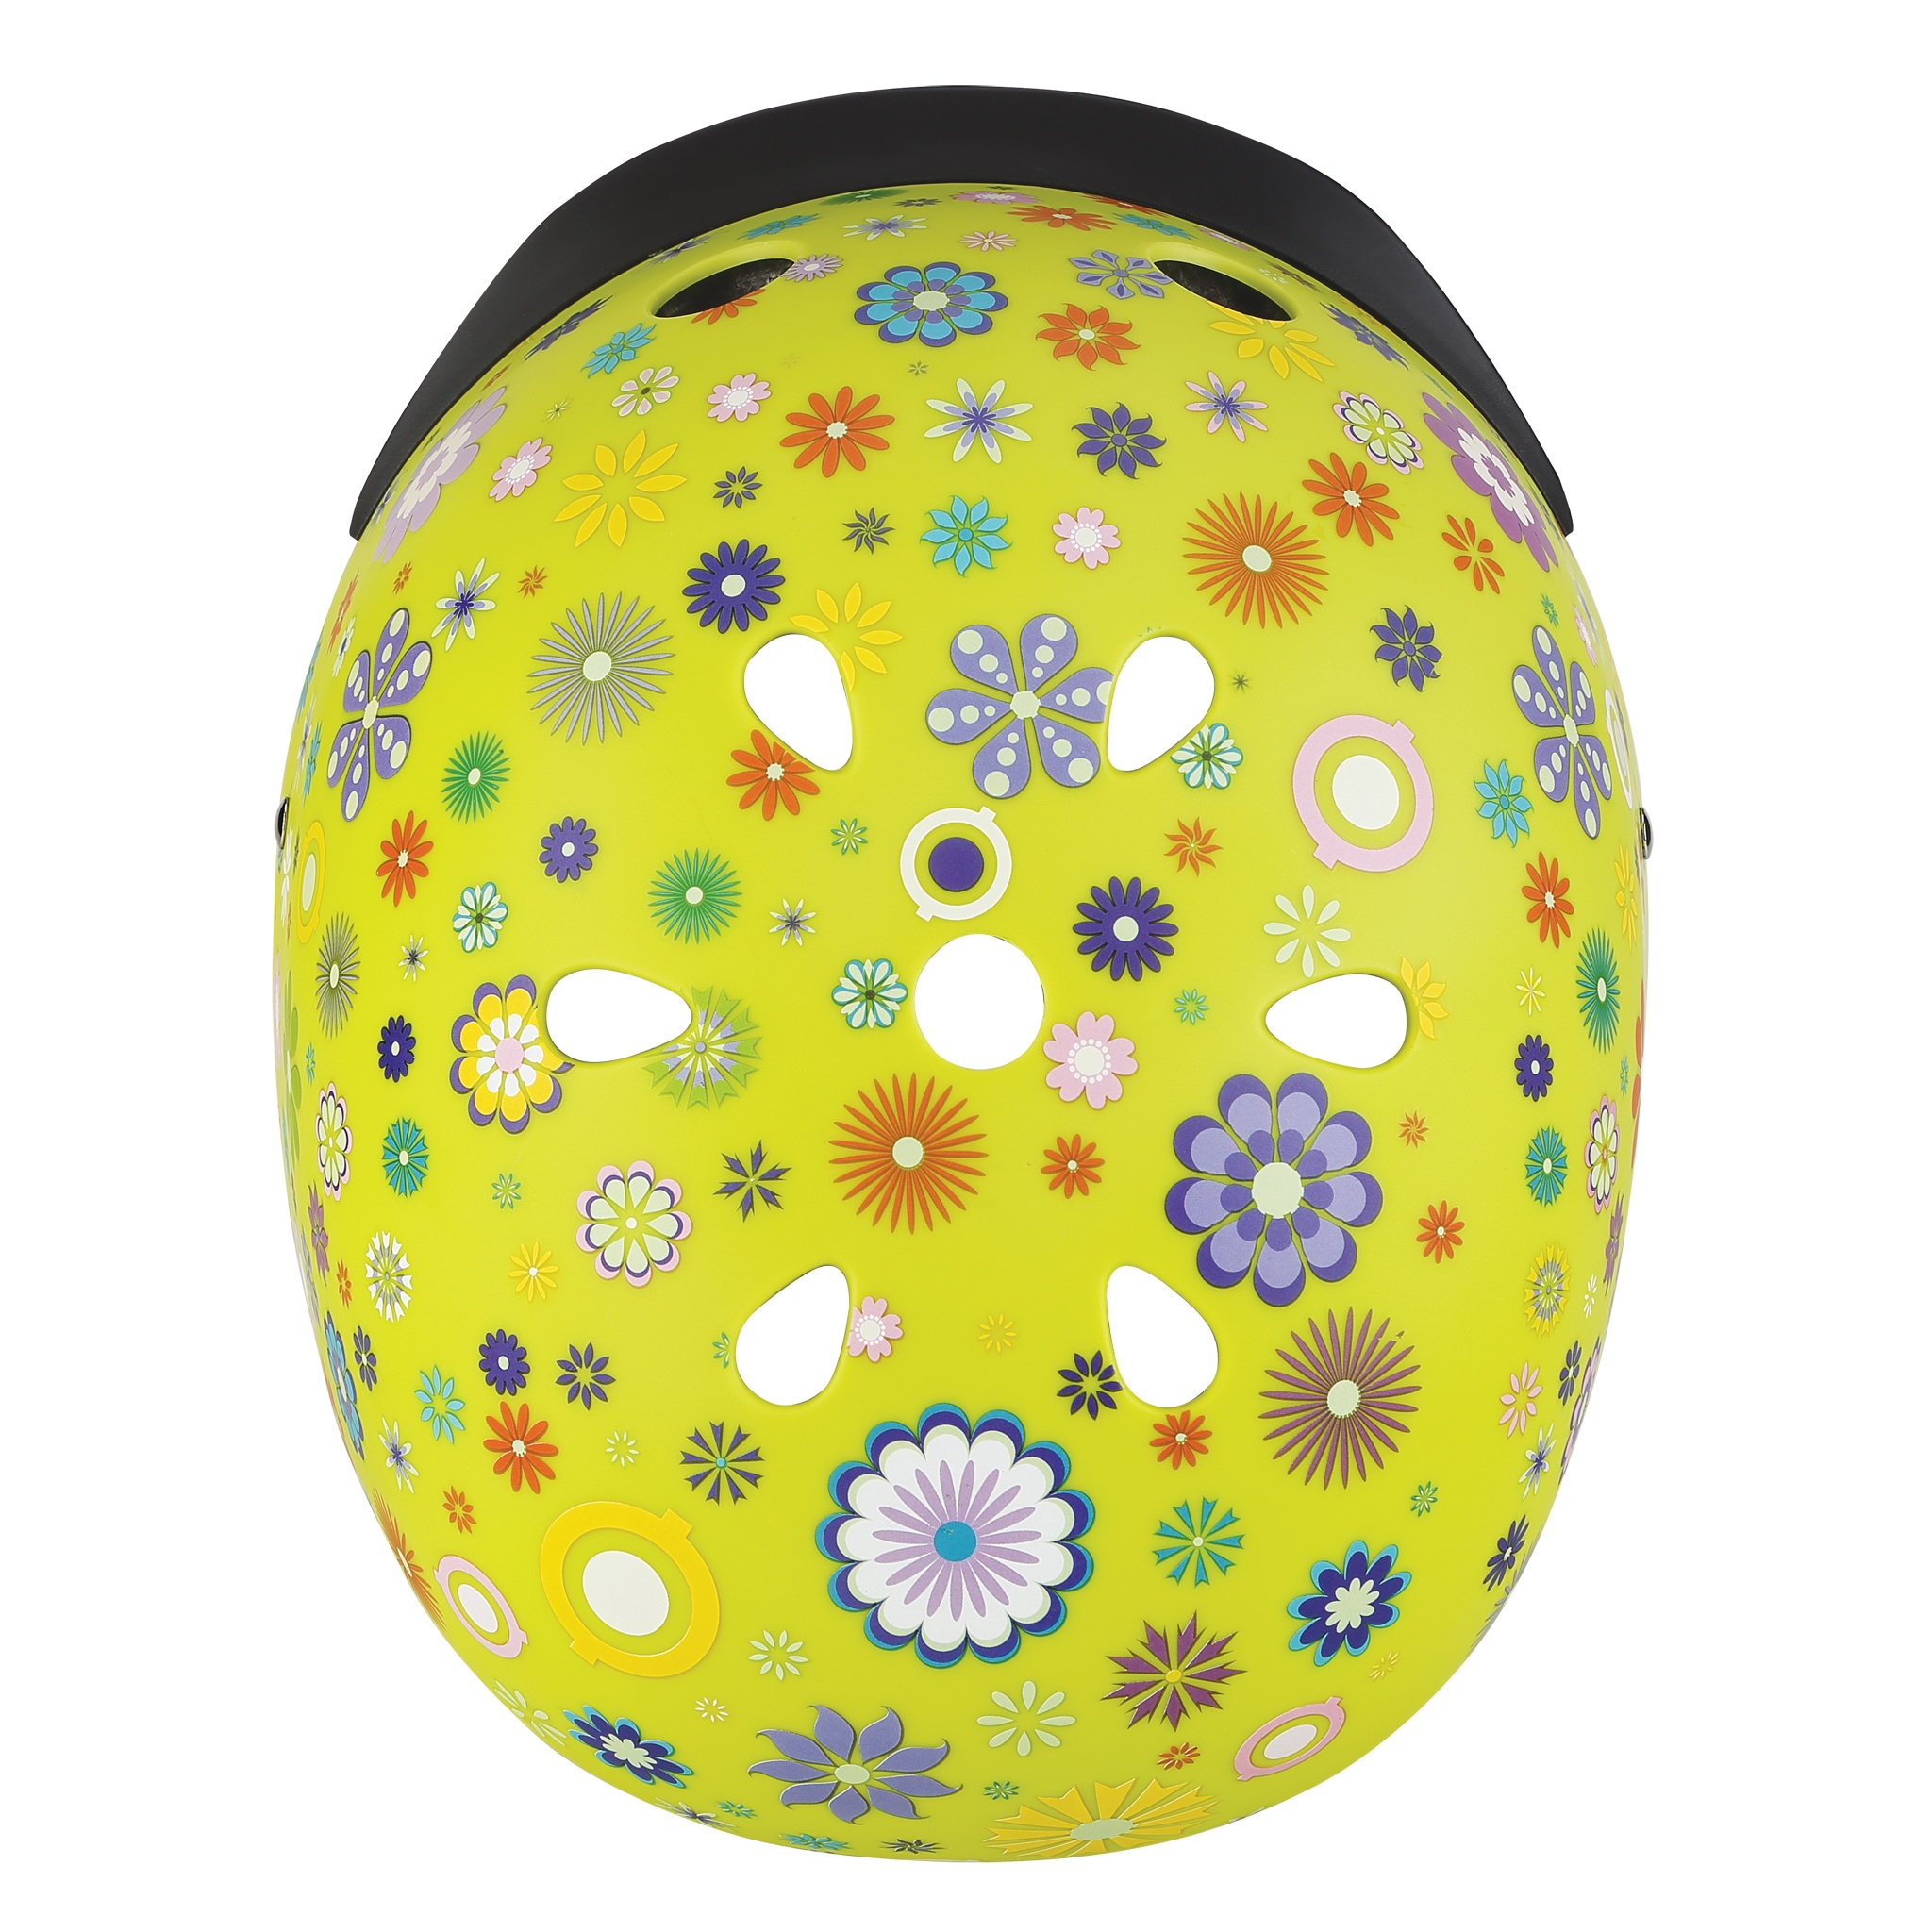 ELITE-helmets-best-scooter-helmets-for-kids-with-air-vents-cooling-system-lime-green 3